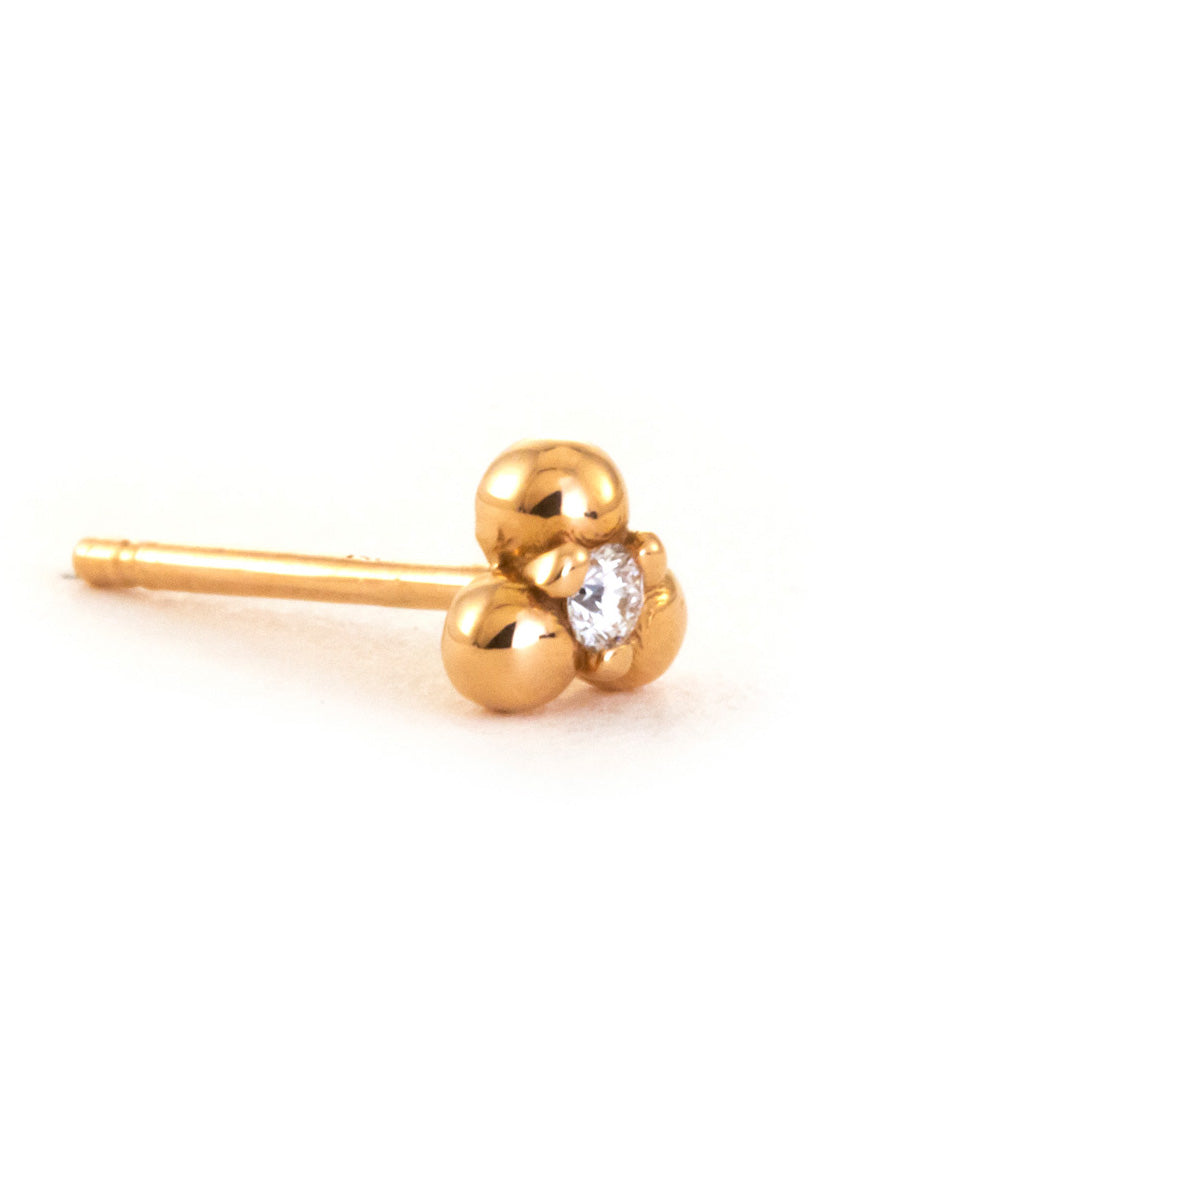 Three Ball Earring with Diamond - 14K Rose Gold